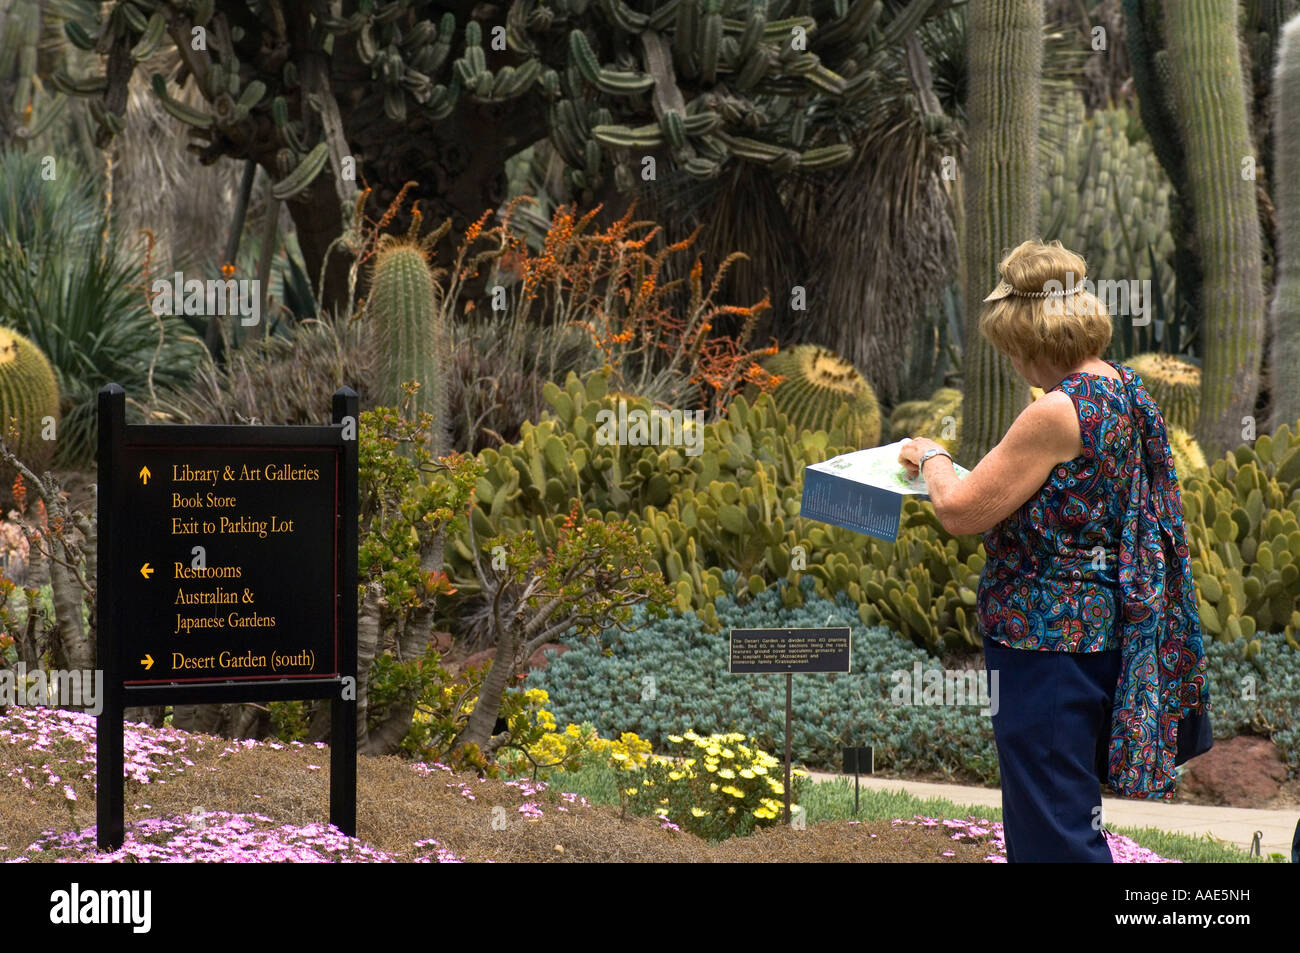 Elderly Woman Looking For Directions On The Map Of Botanical Garden